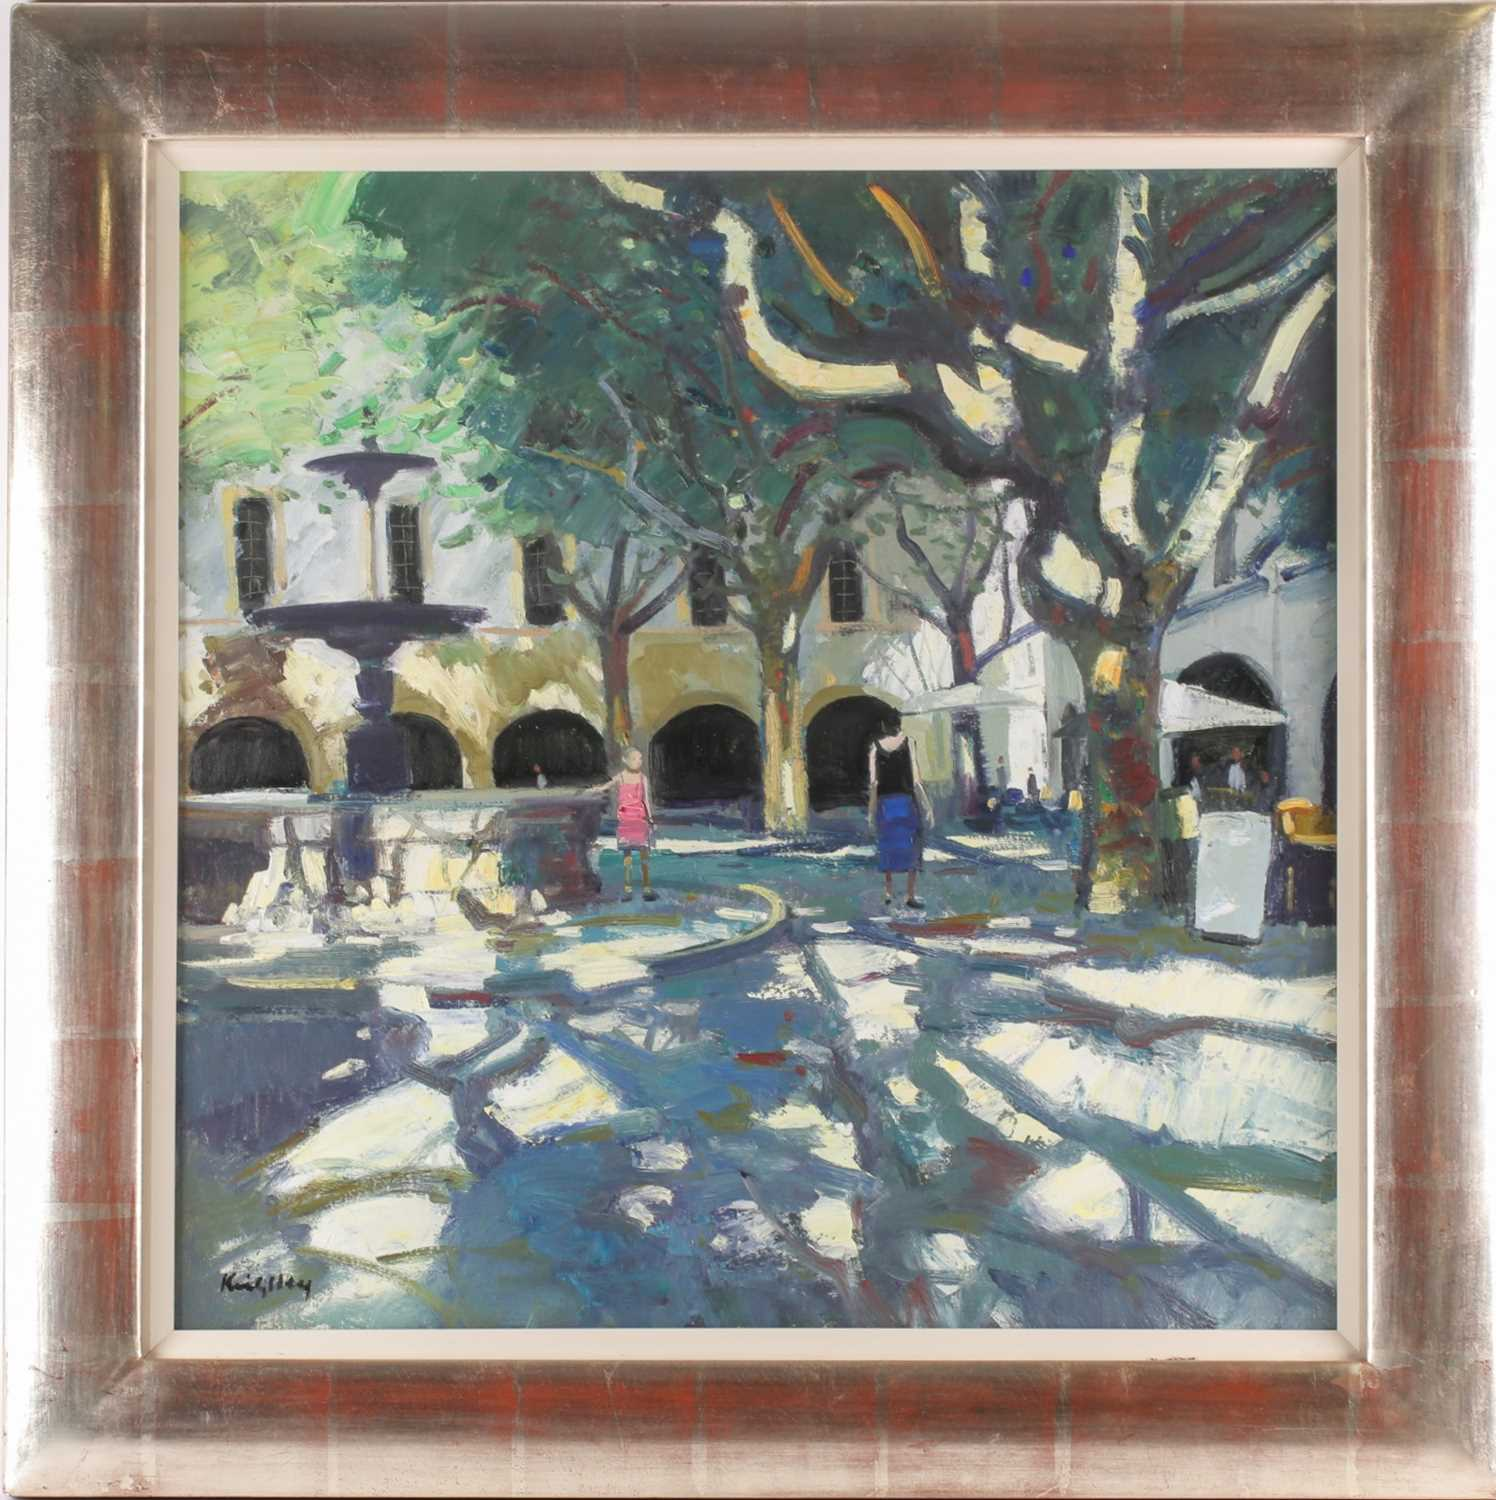 John Kingsley, RSW, PAI (Scottish), Late afternoon, Uzes, oil on canvas, signed lower left, 60 cm